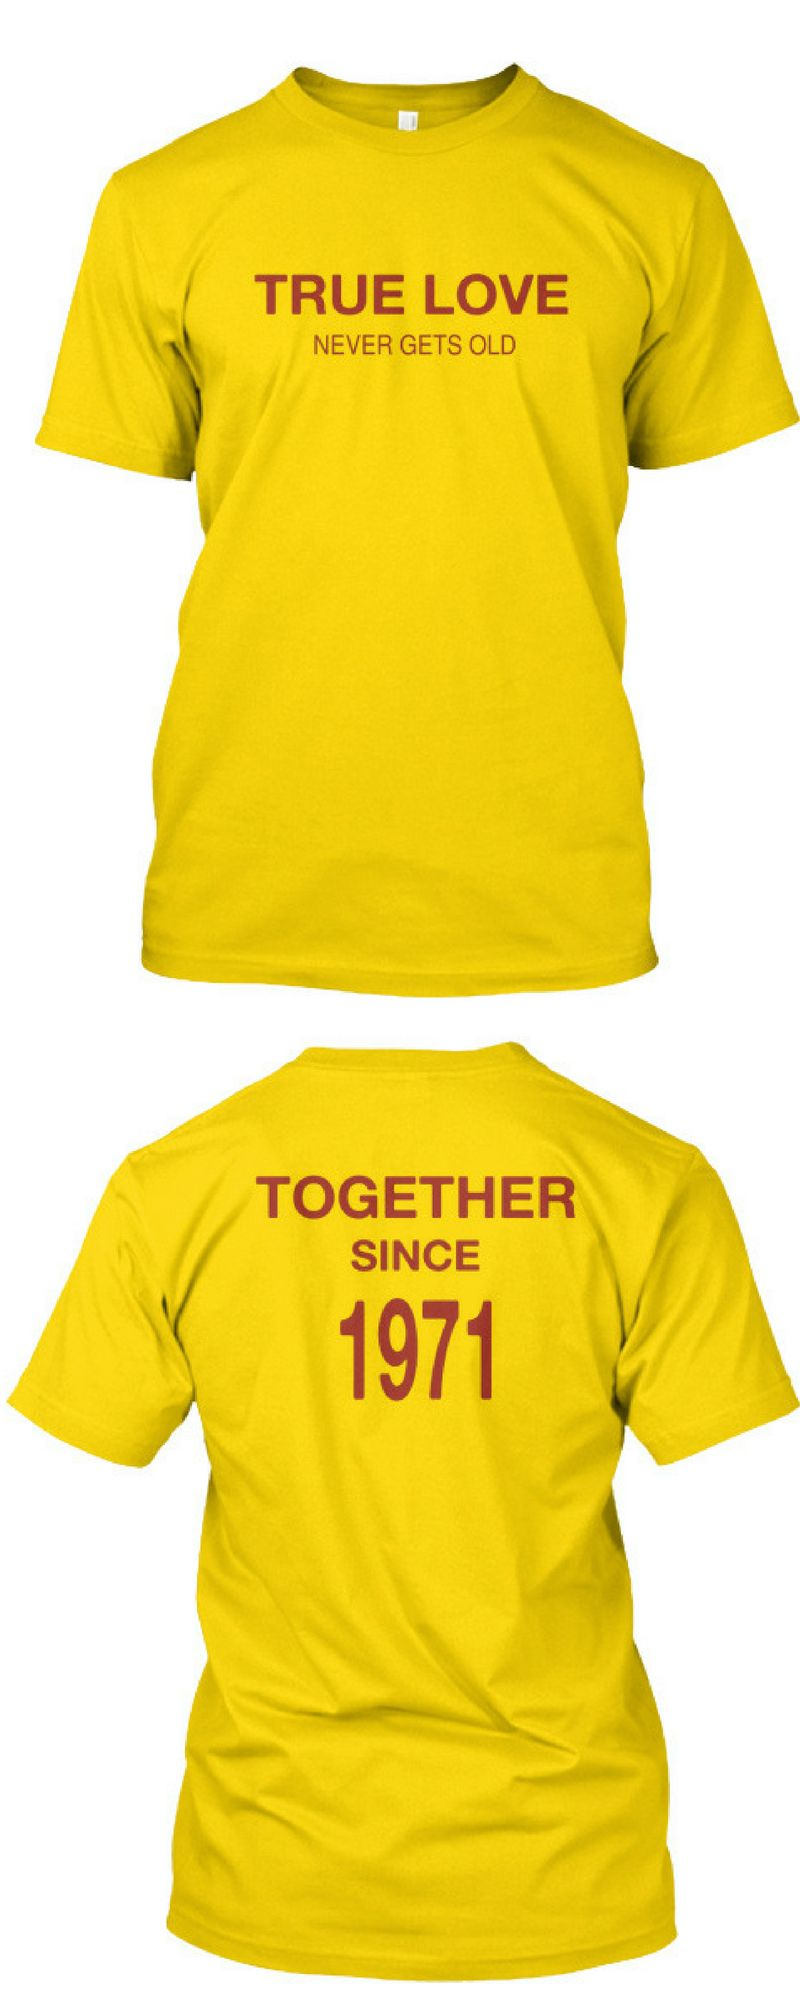 Cute And Romantic Shirt Special Design For Couple Life Goals